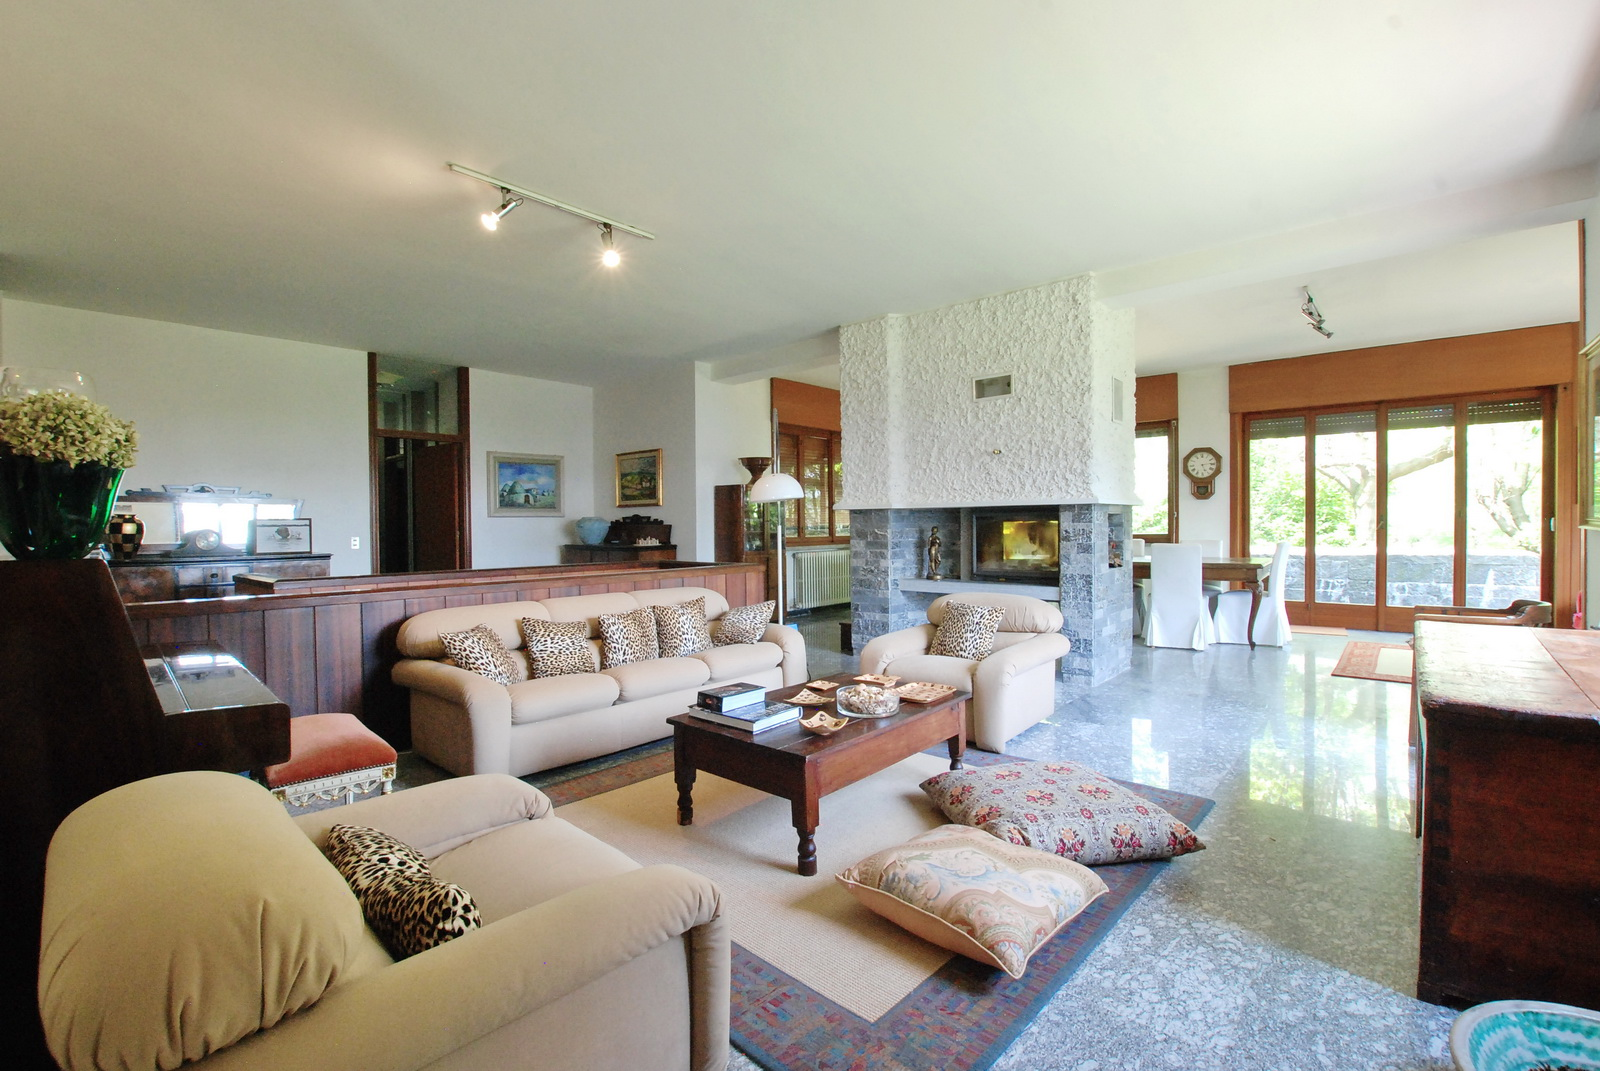 EXCLUSIVE SUNNY VILLA IN ARONA WITH PARK